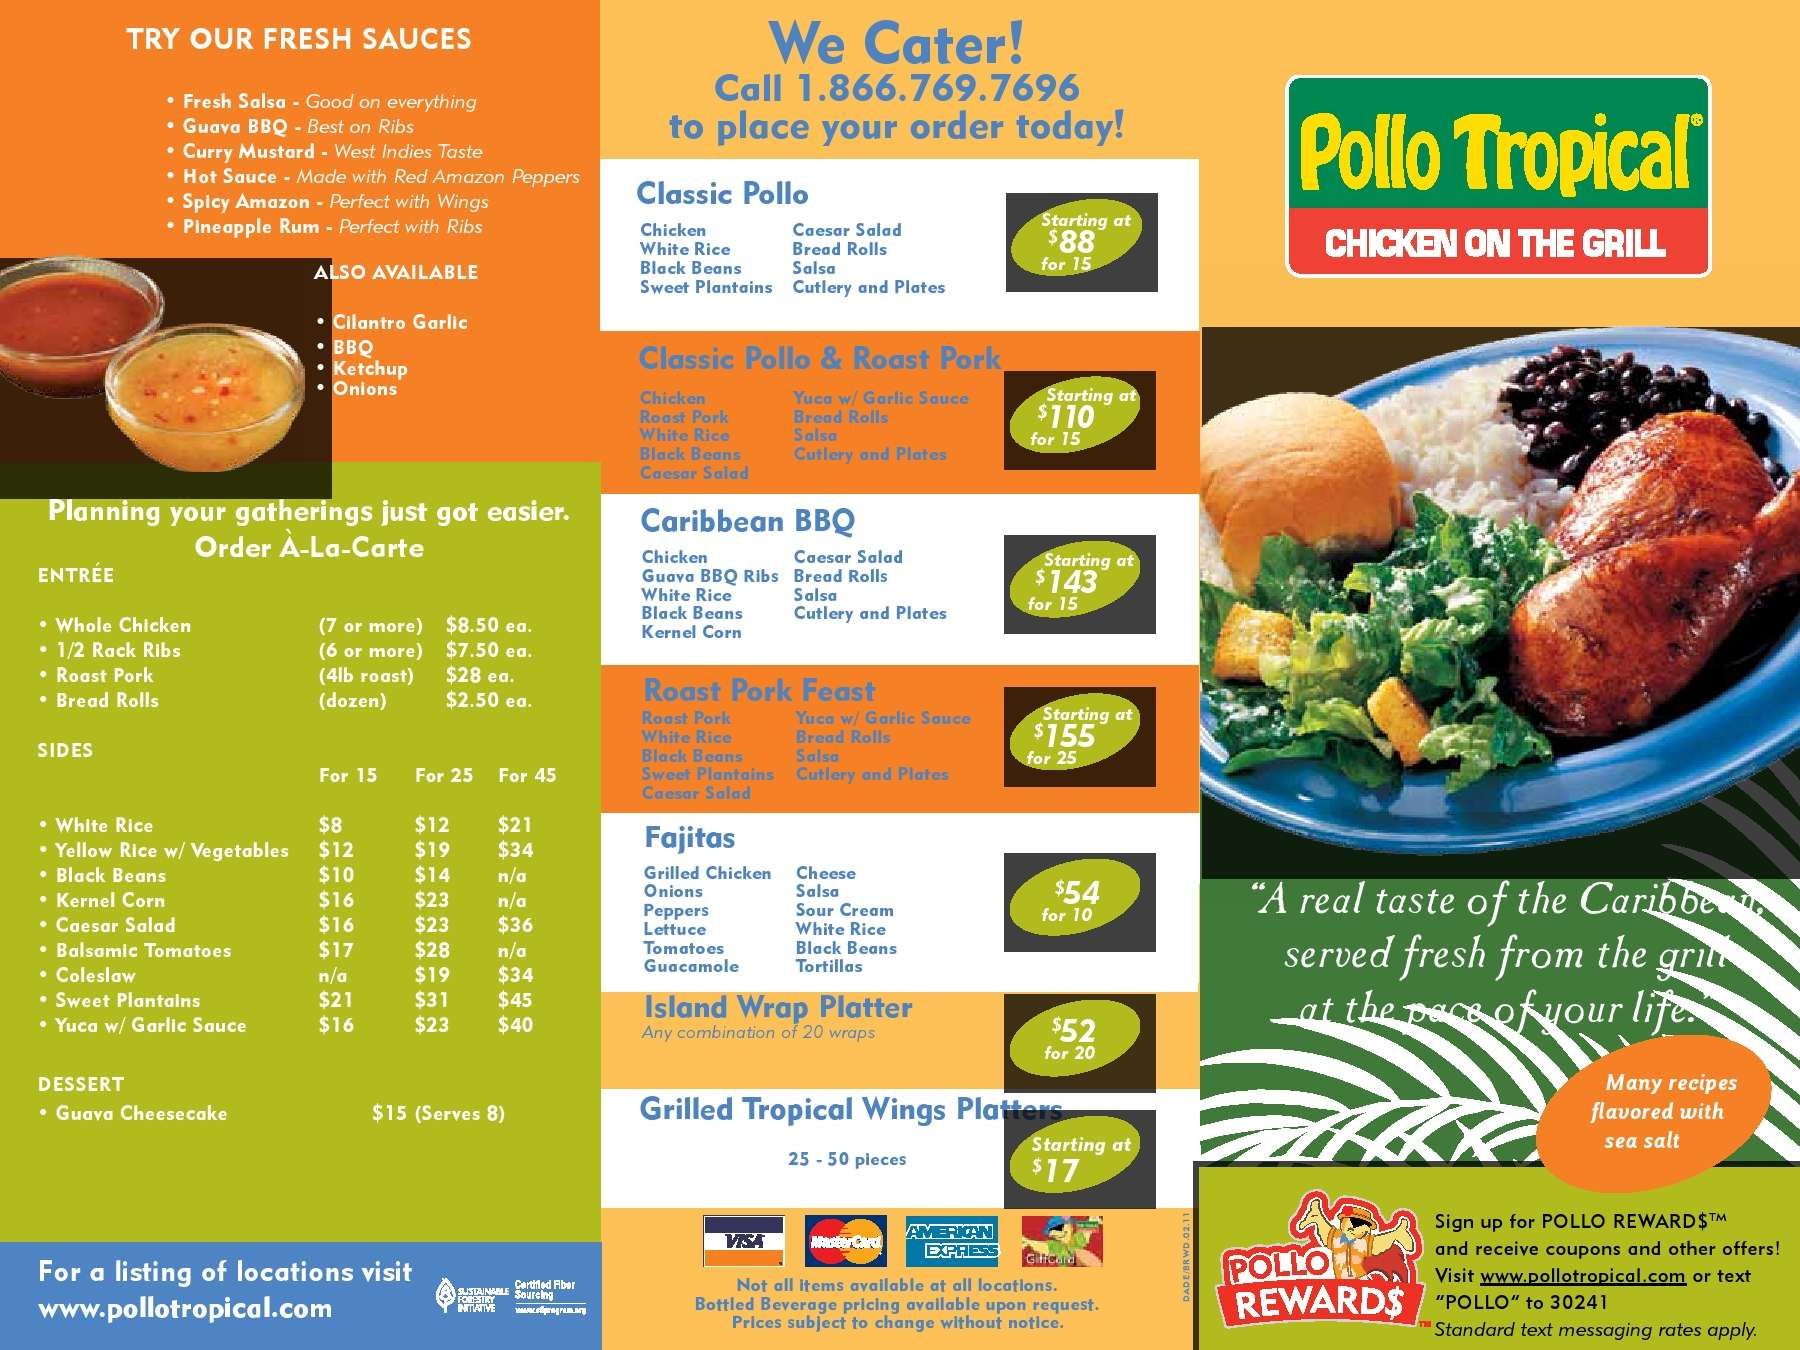 What is Pollo Tropical?